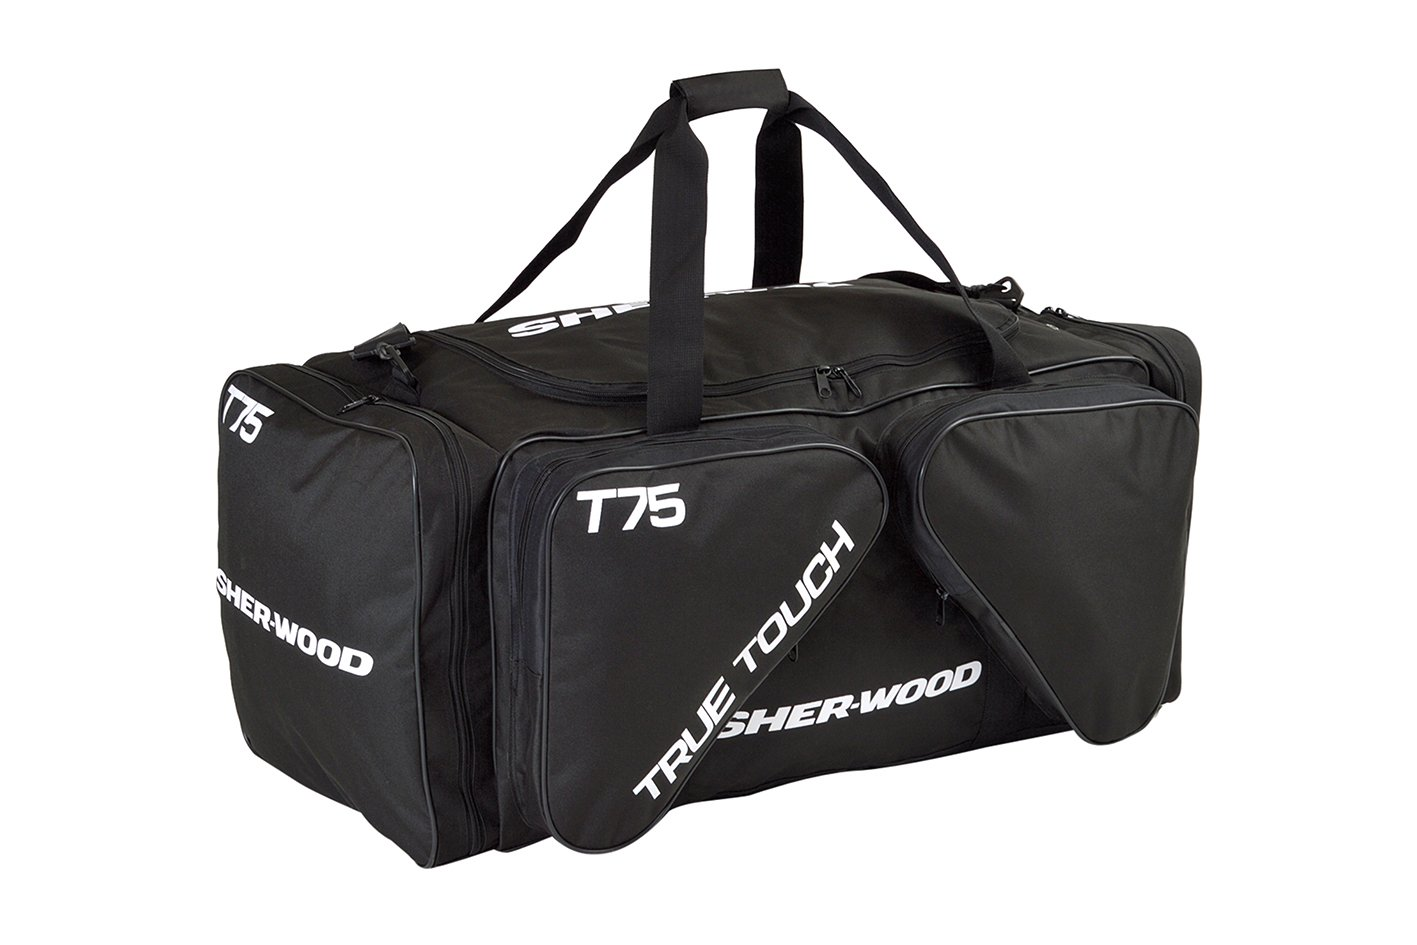 Sherwood Holdall-T75 True Touch 172 litri 80064